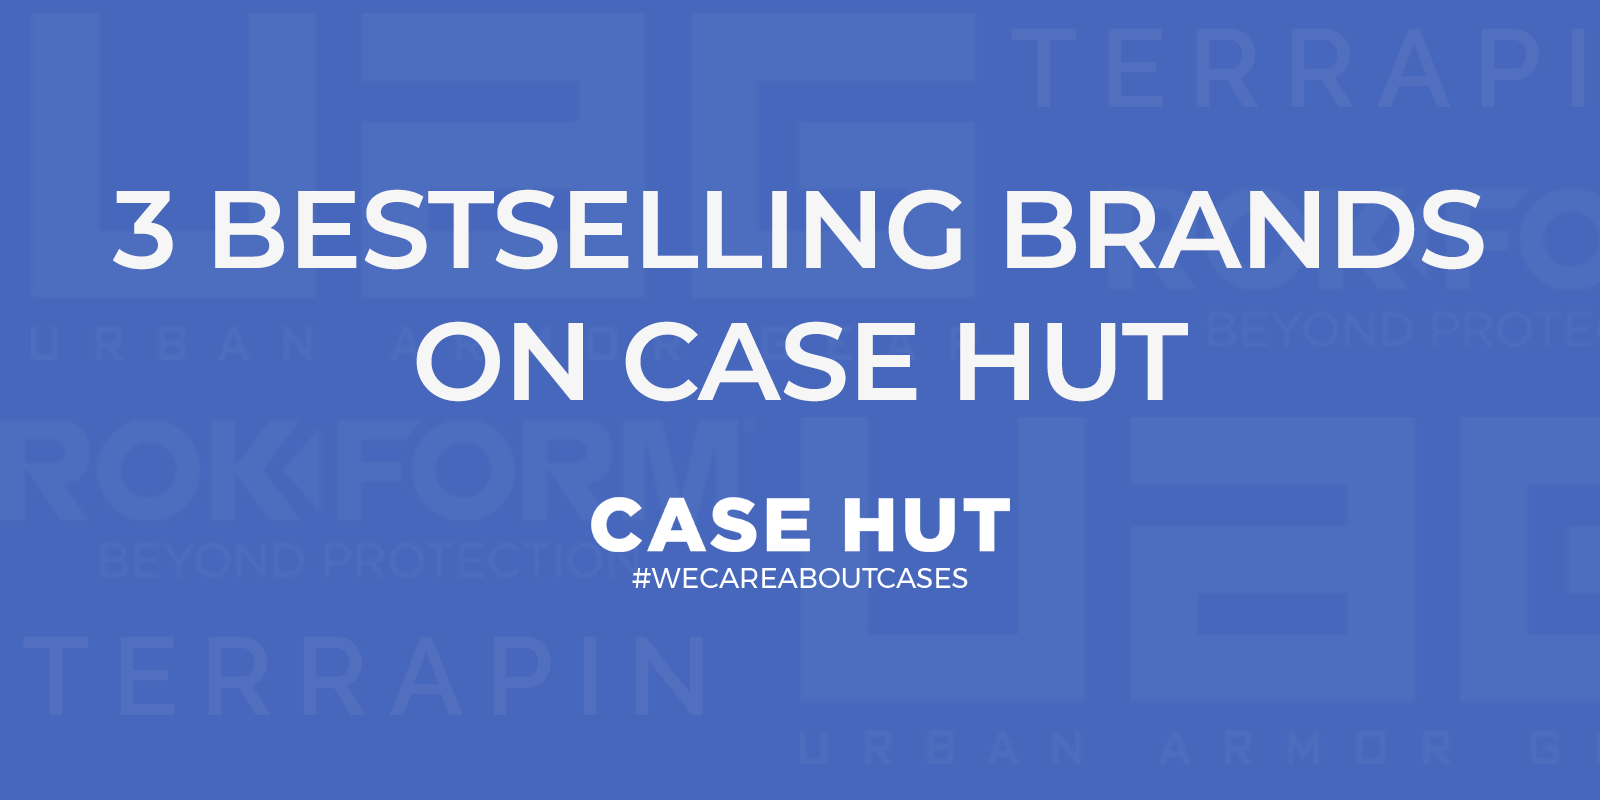 3 bestselling brands on Case Hut